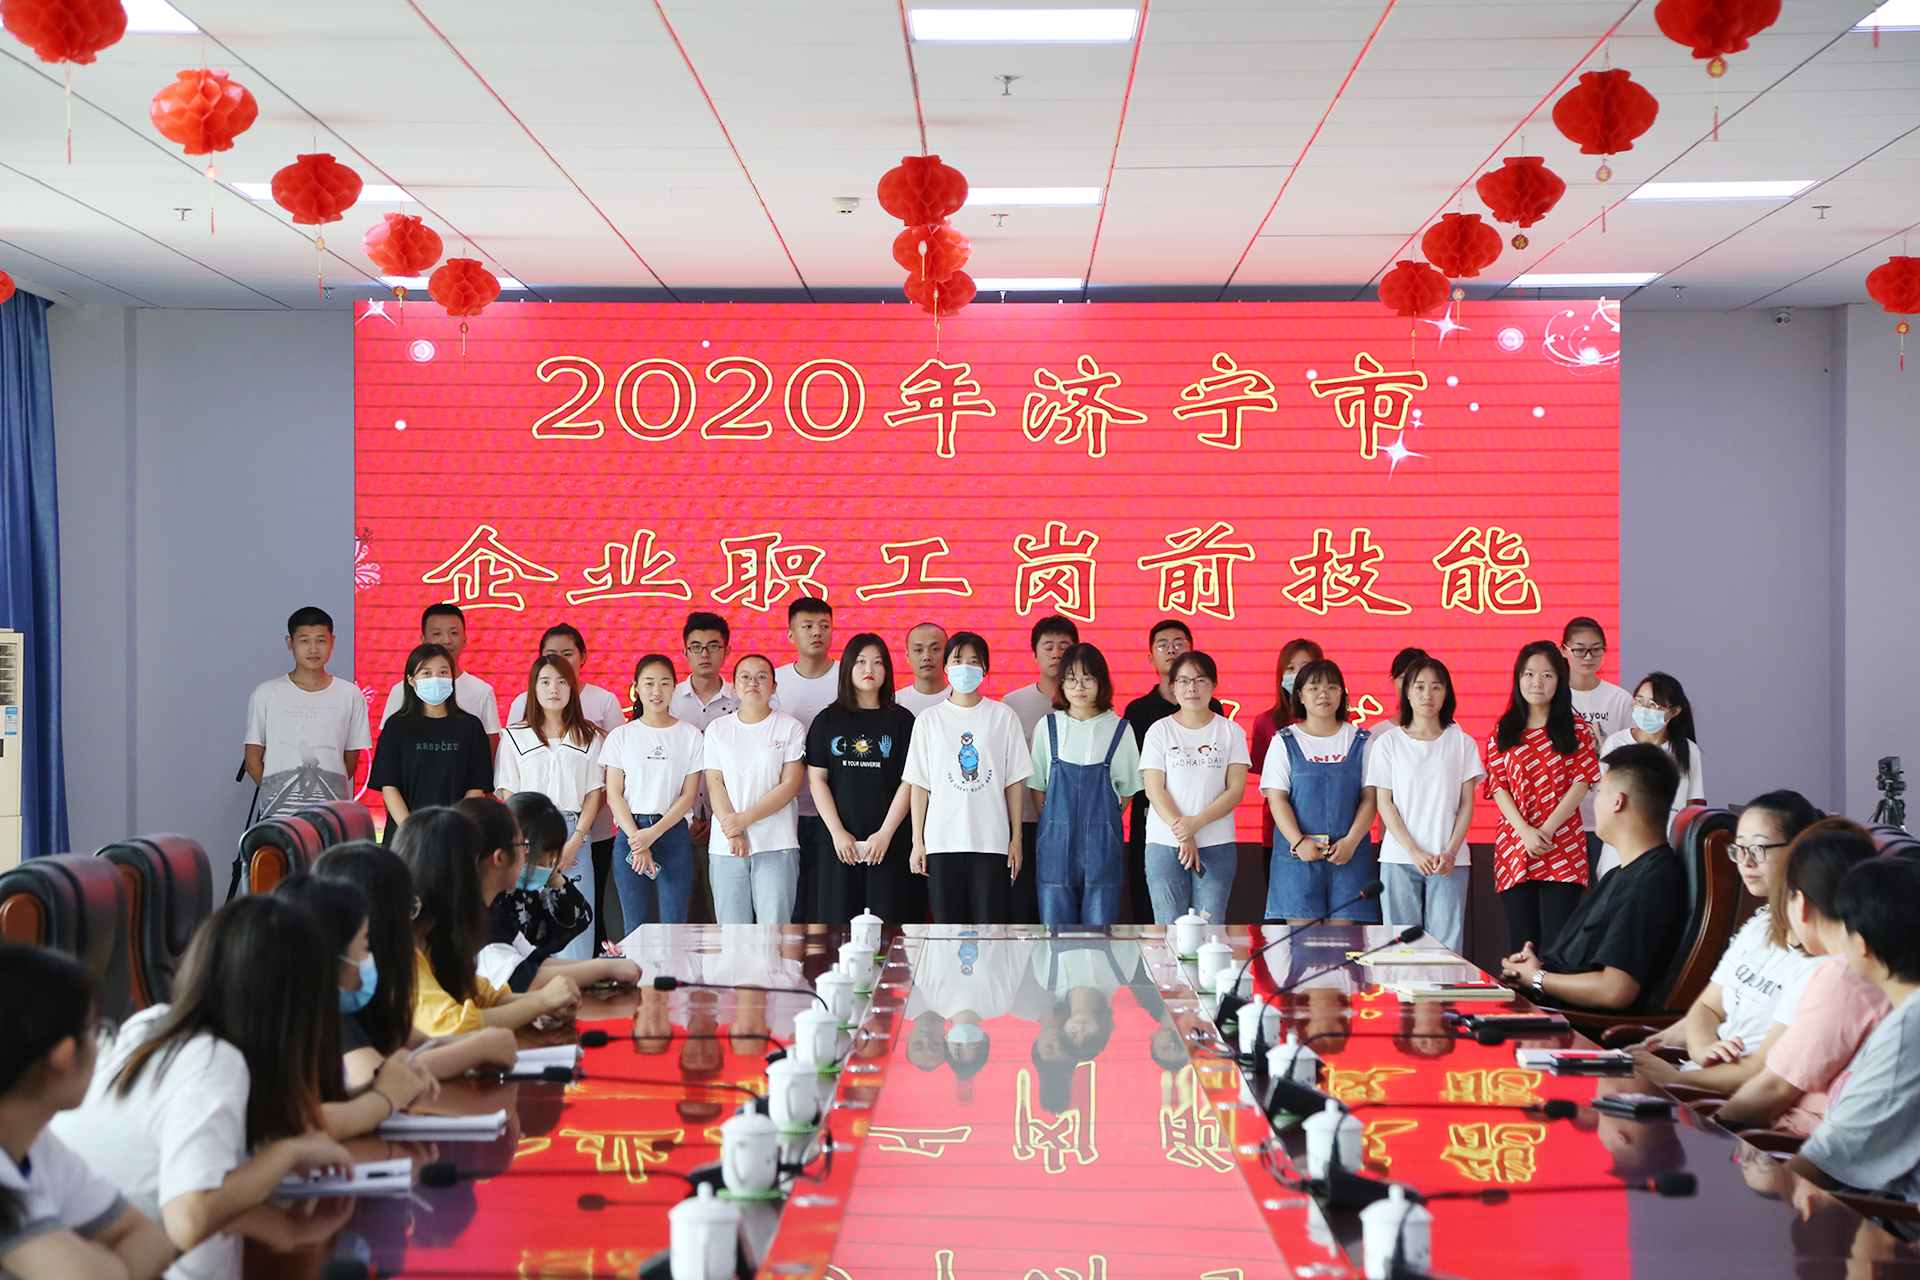 The Opening Ceremony Of The First Batch Of Pre-job Skills Training For Employees Of Jining City Industry And Information Business Vocational Training College In 2020 Is Held